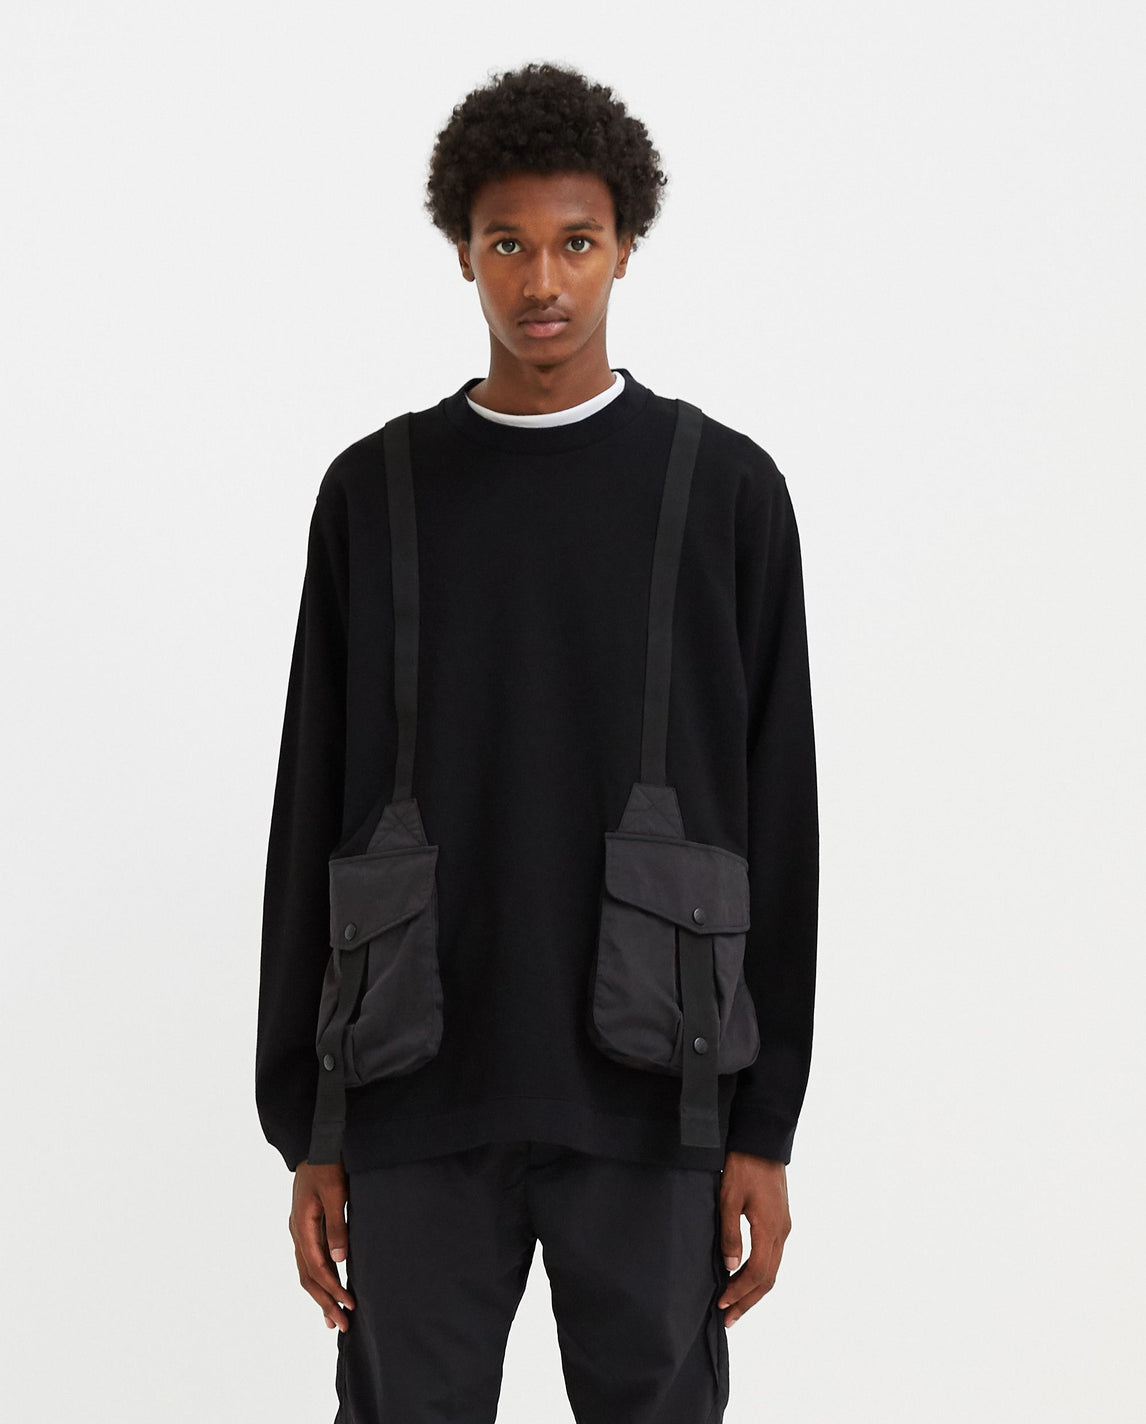 Hunting Pocket Taped Sweatshirt - Black MENS WHITE MOUNTAINEERING